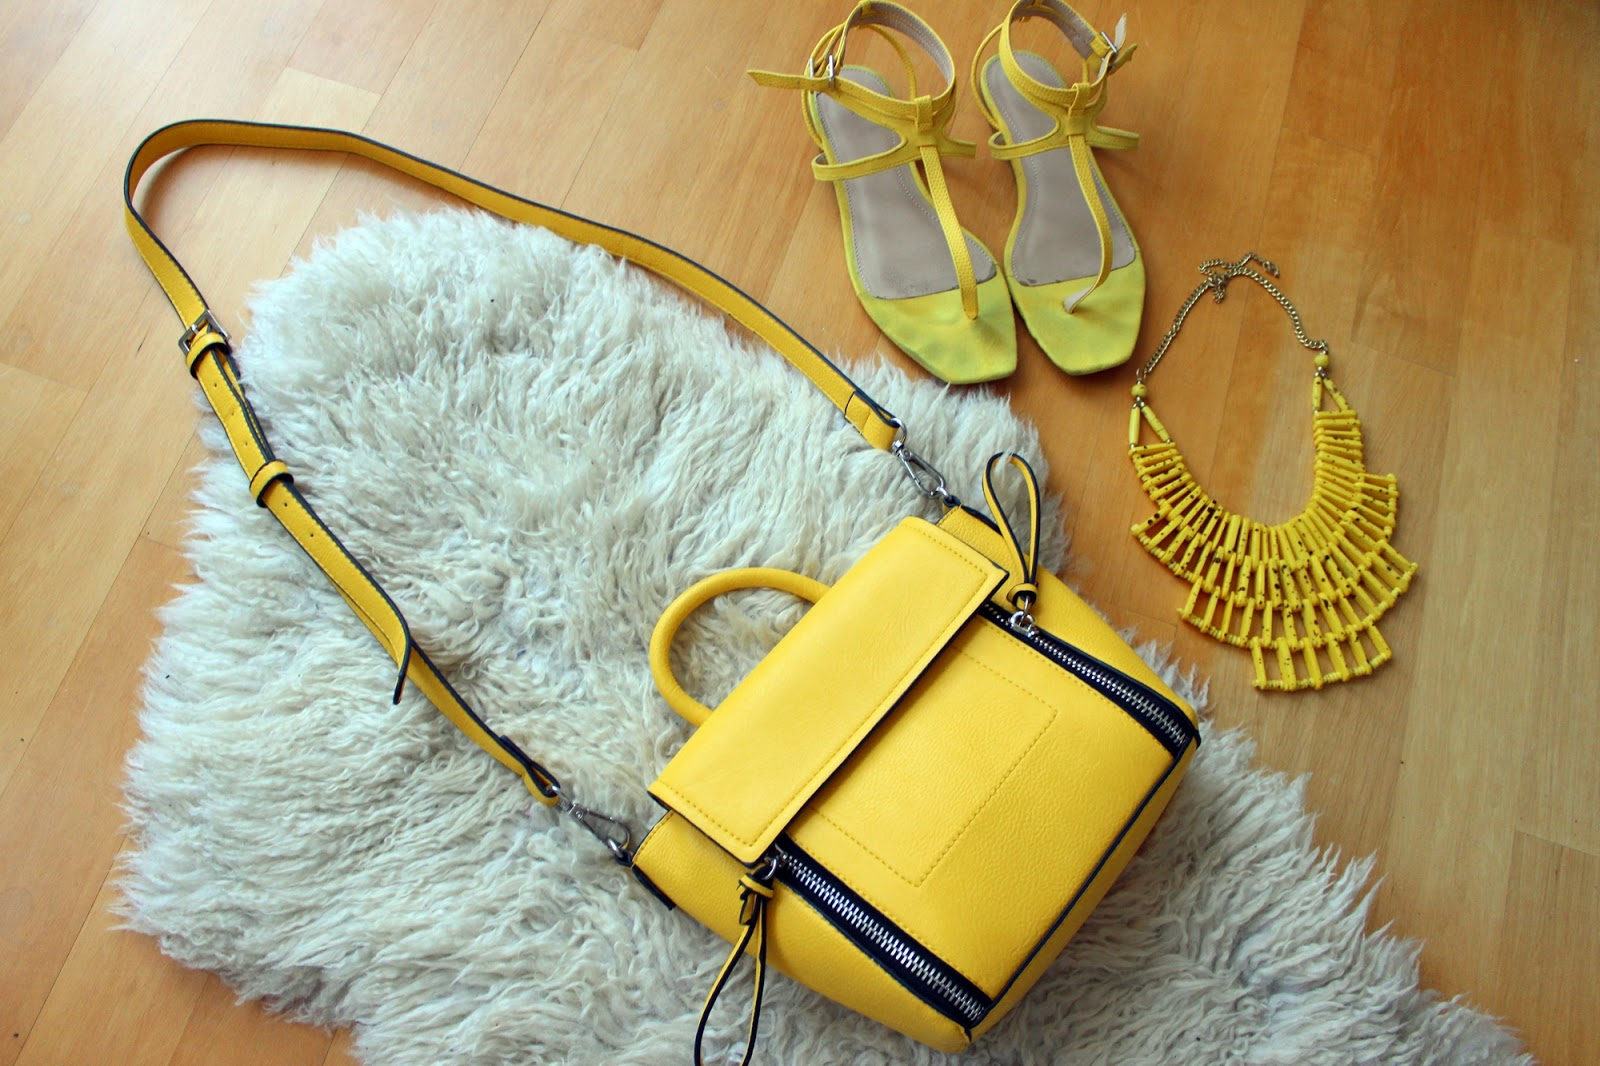 Barcelona shopping haul zara flats statement necklace stradivarius trapeze bag parfois